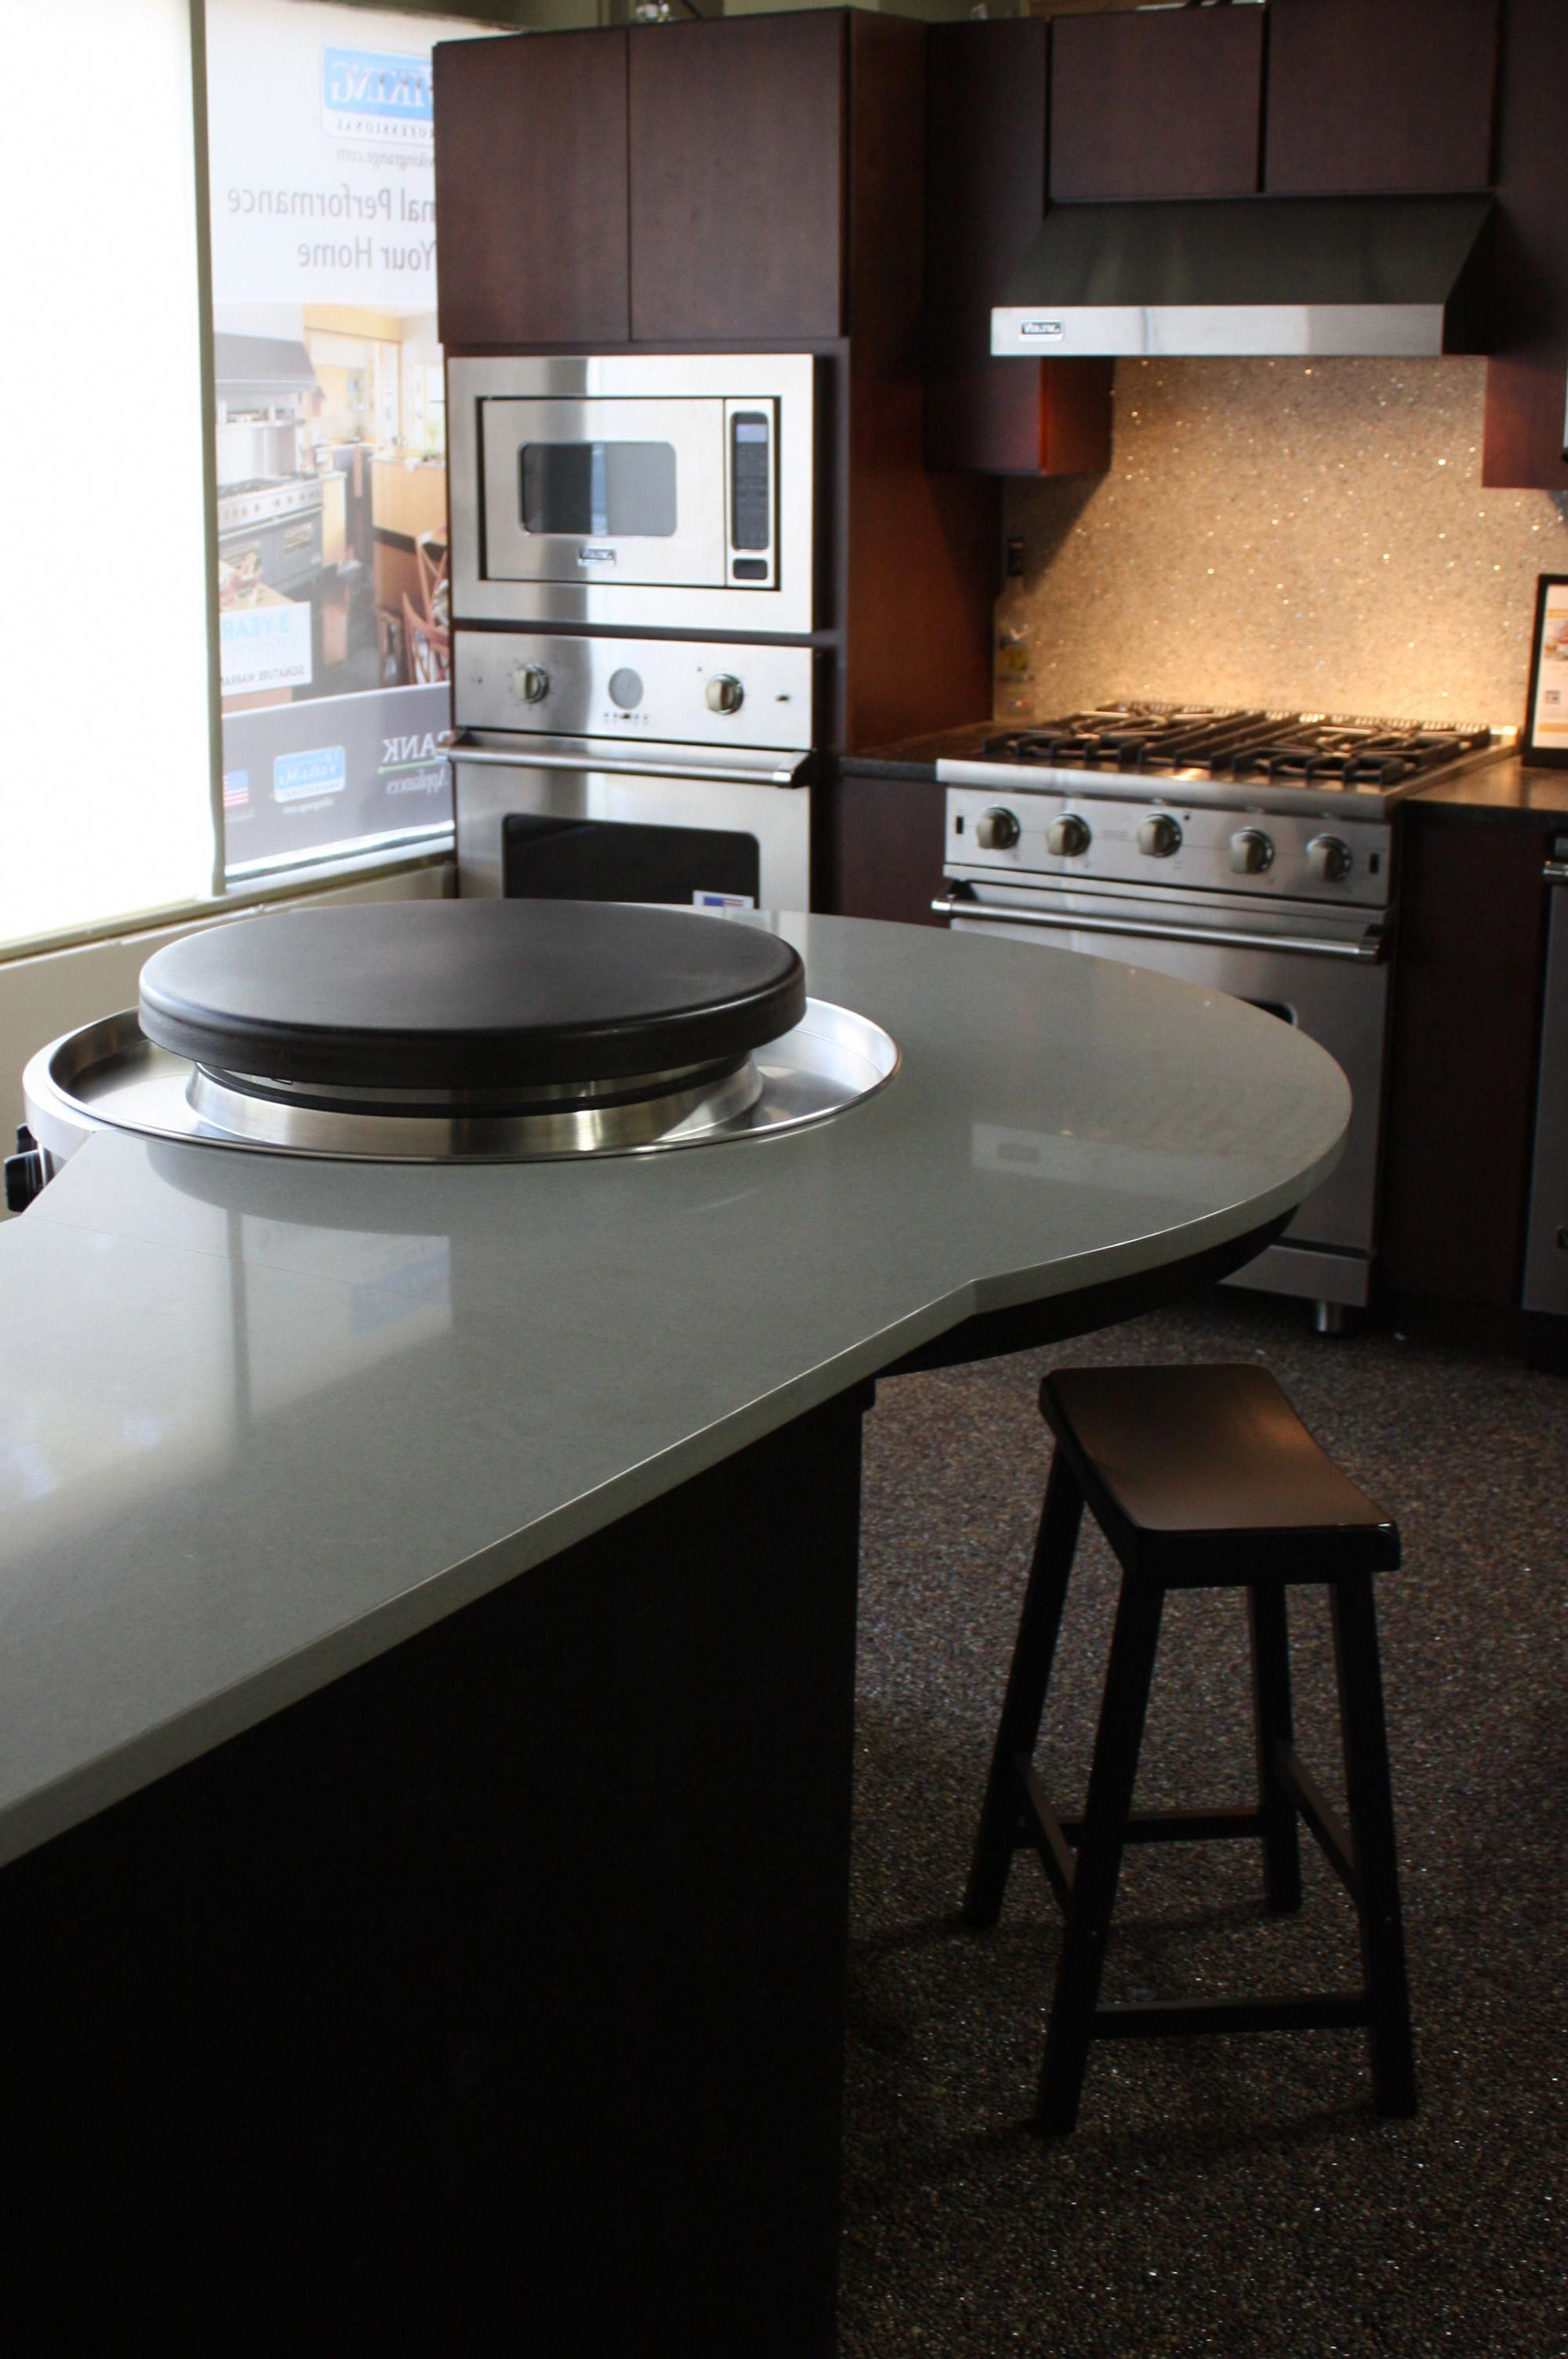 Evo builtin affinity circular cooktop at eastbank appliance in